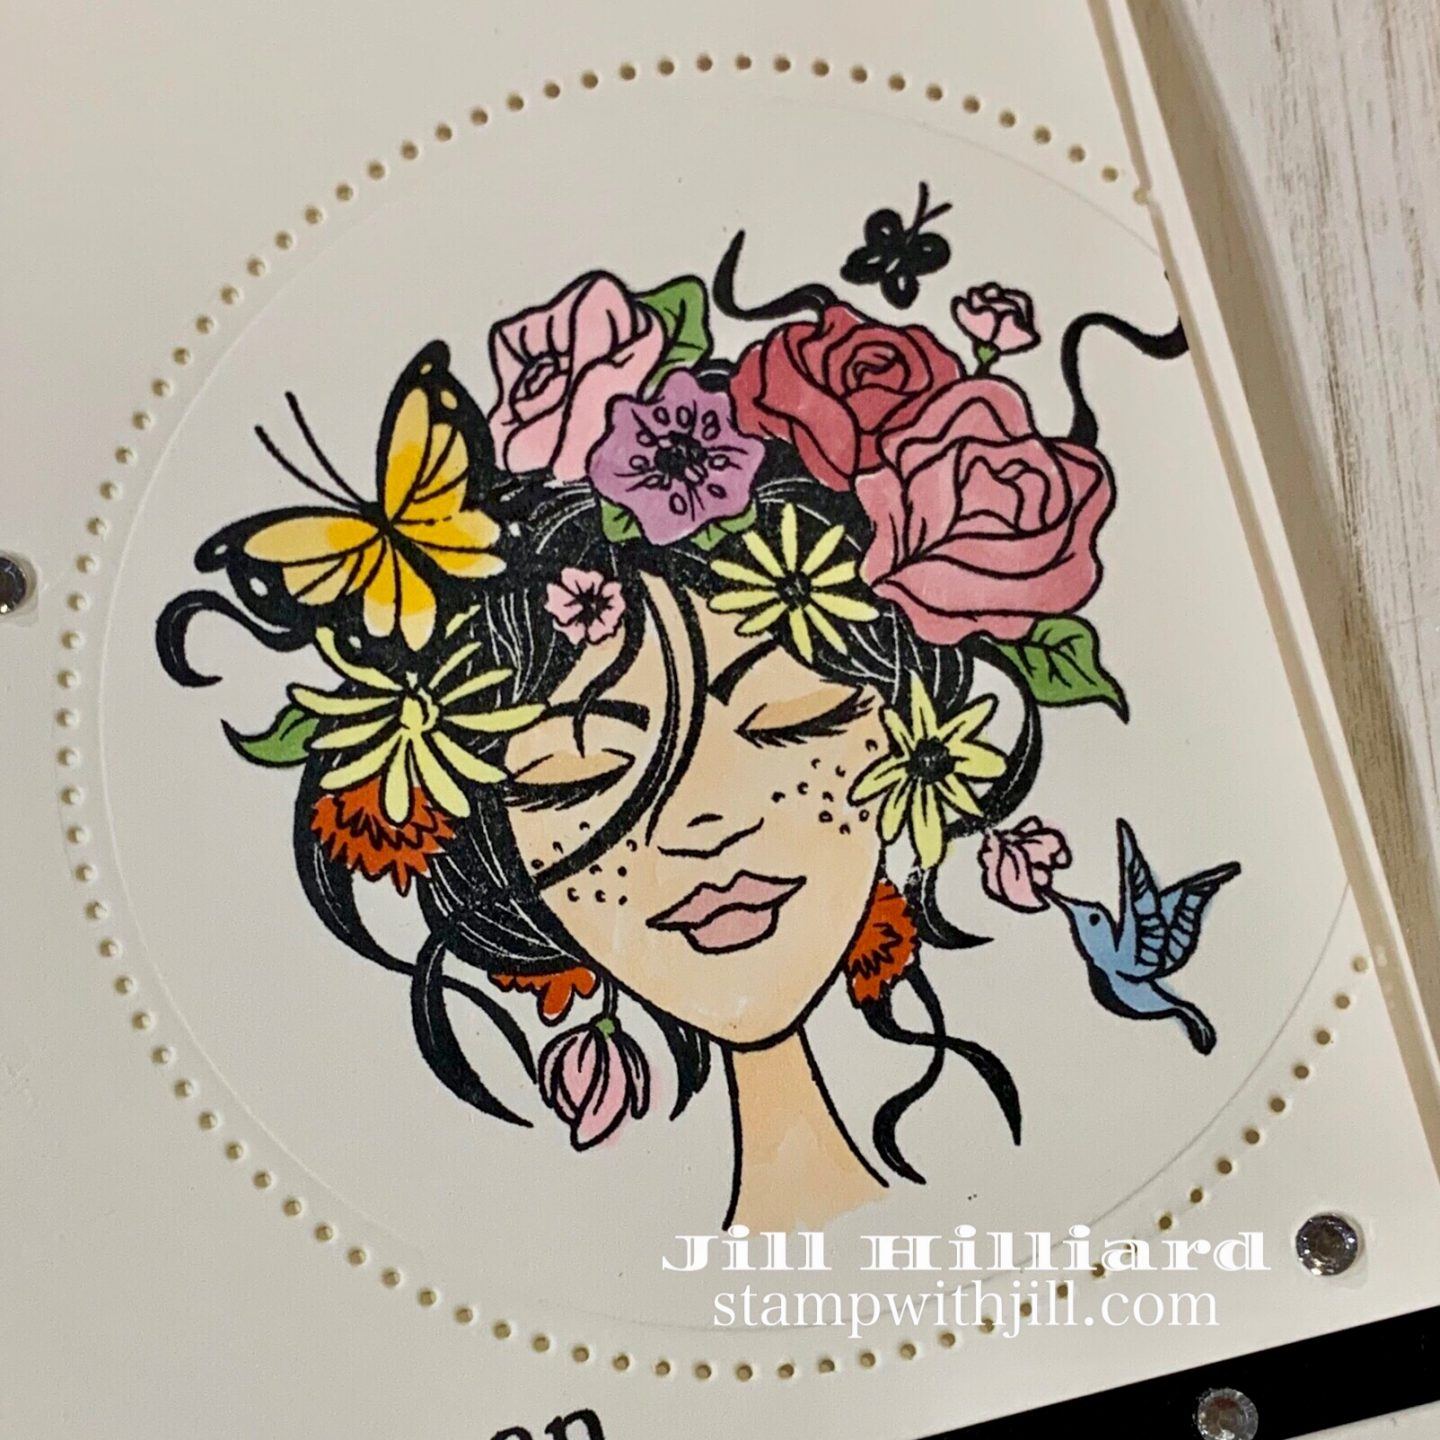 Stamp with Jill, Spellbinders+FSJ May 2019 Stamp of the Month, Natural Dreamer